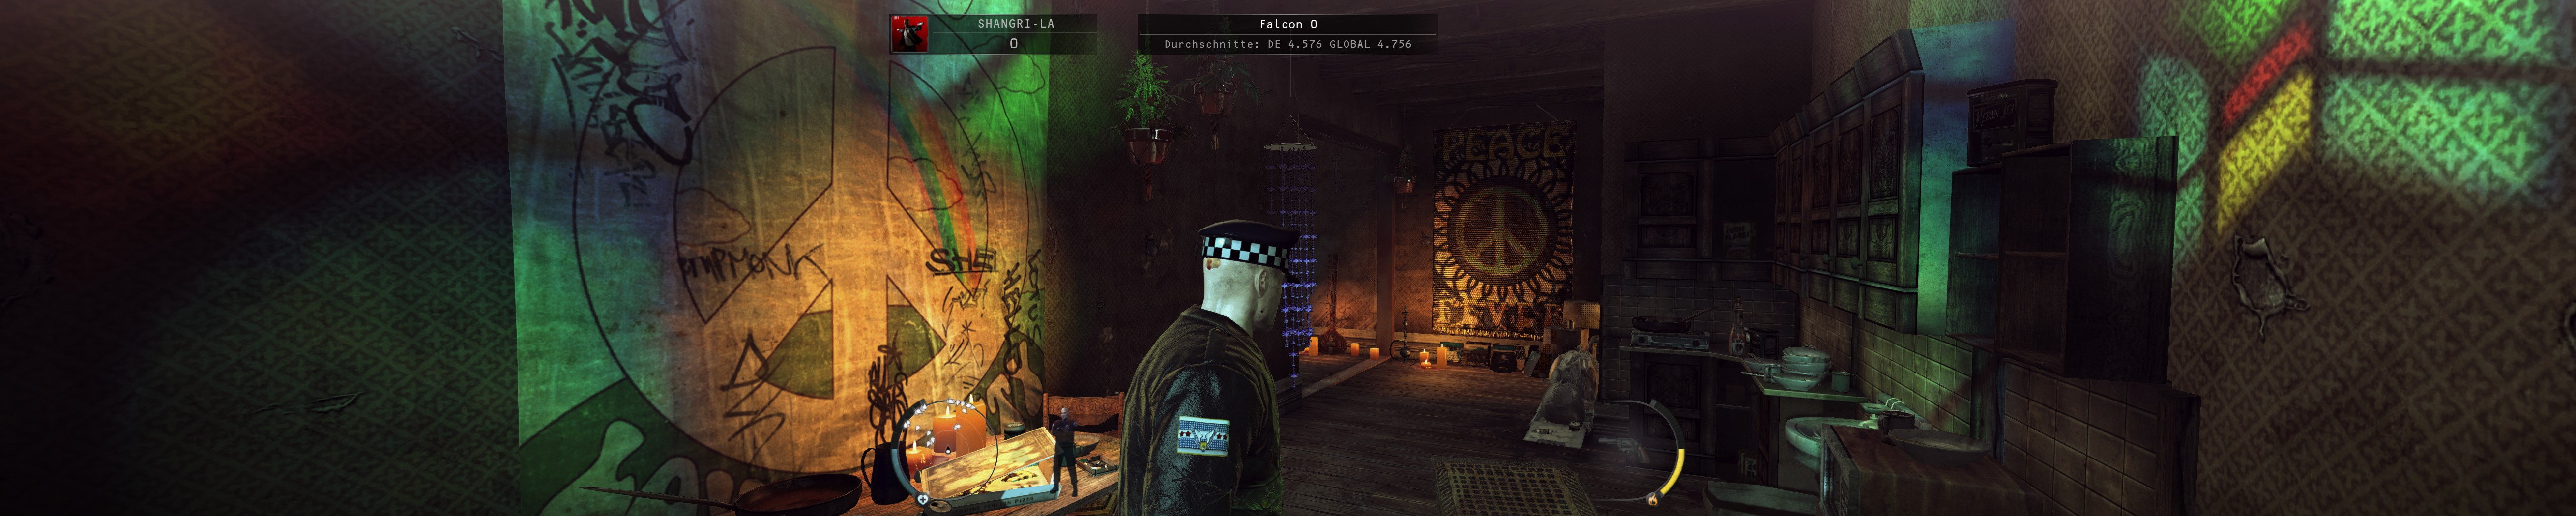 hitman_absolution_2013-05-17_00028